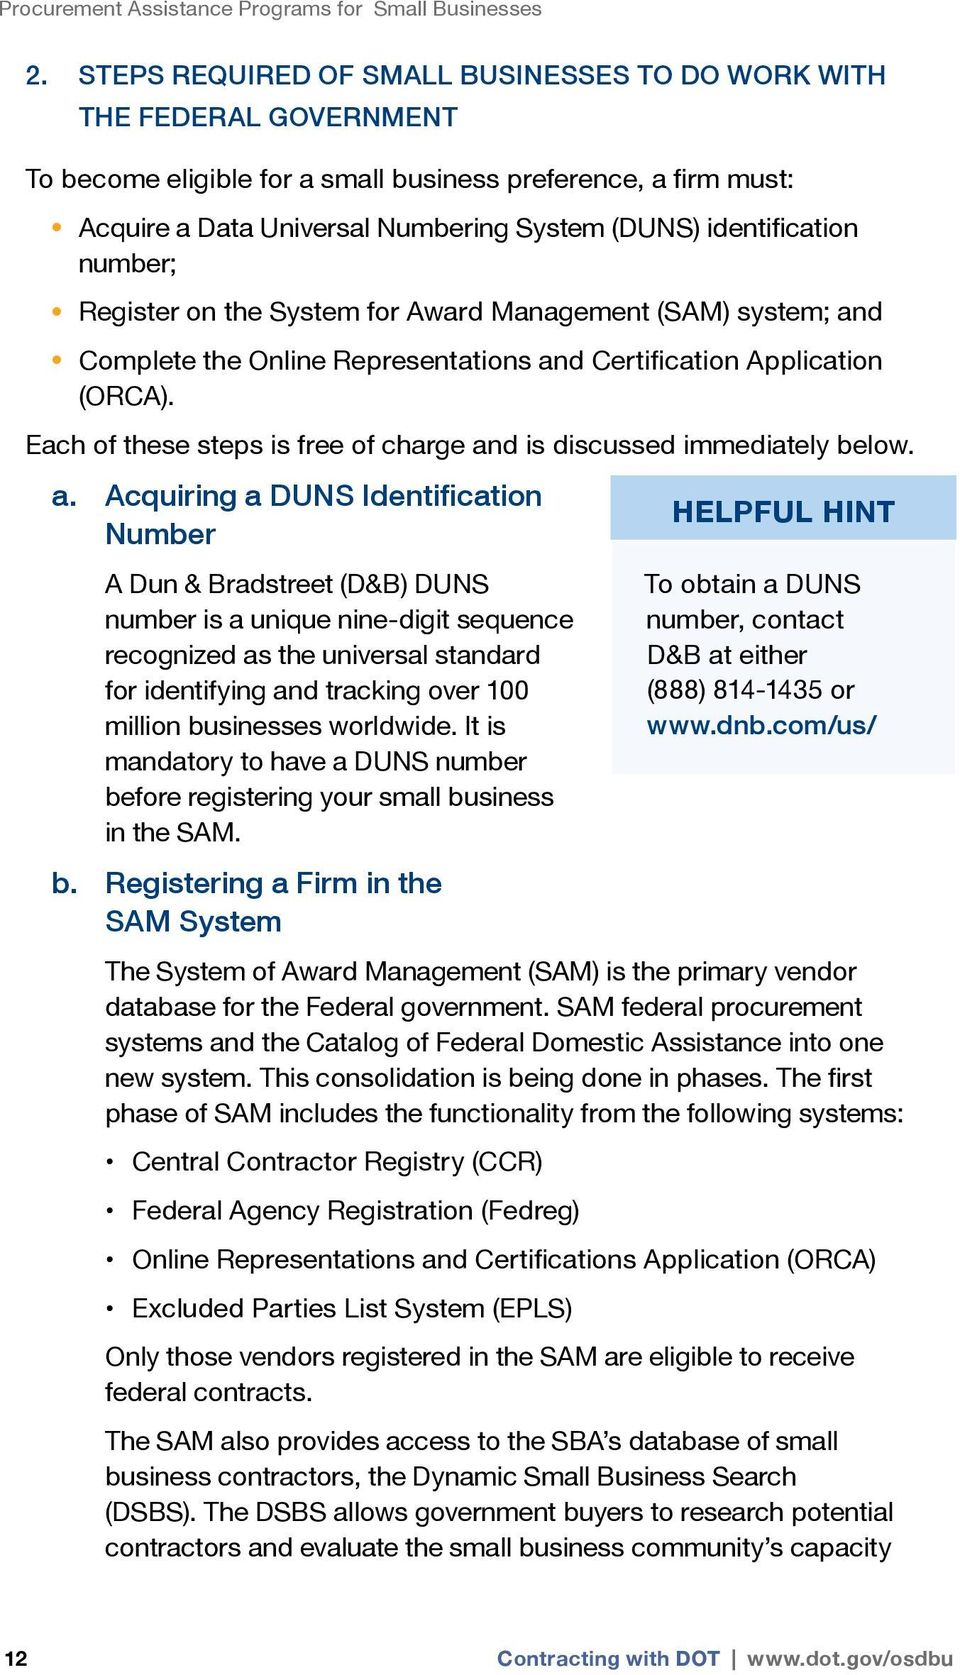 identification number; Register on the System for Award Management (SAM) system; and Complete the Online Representations and Certification Application (ORCA).